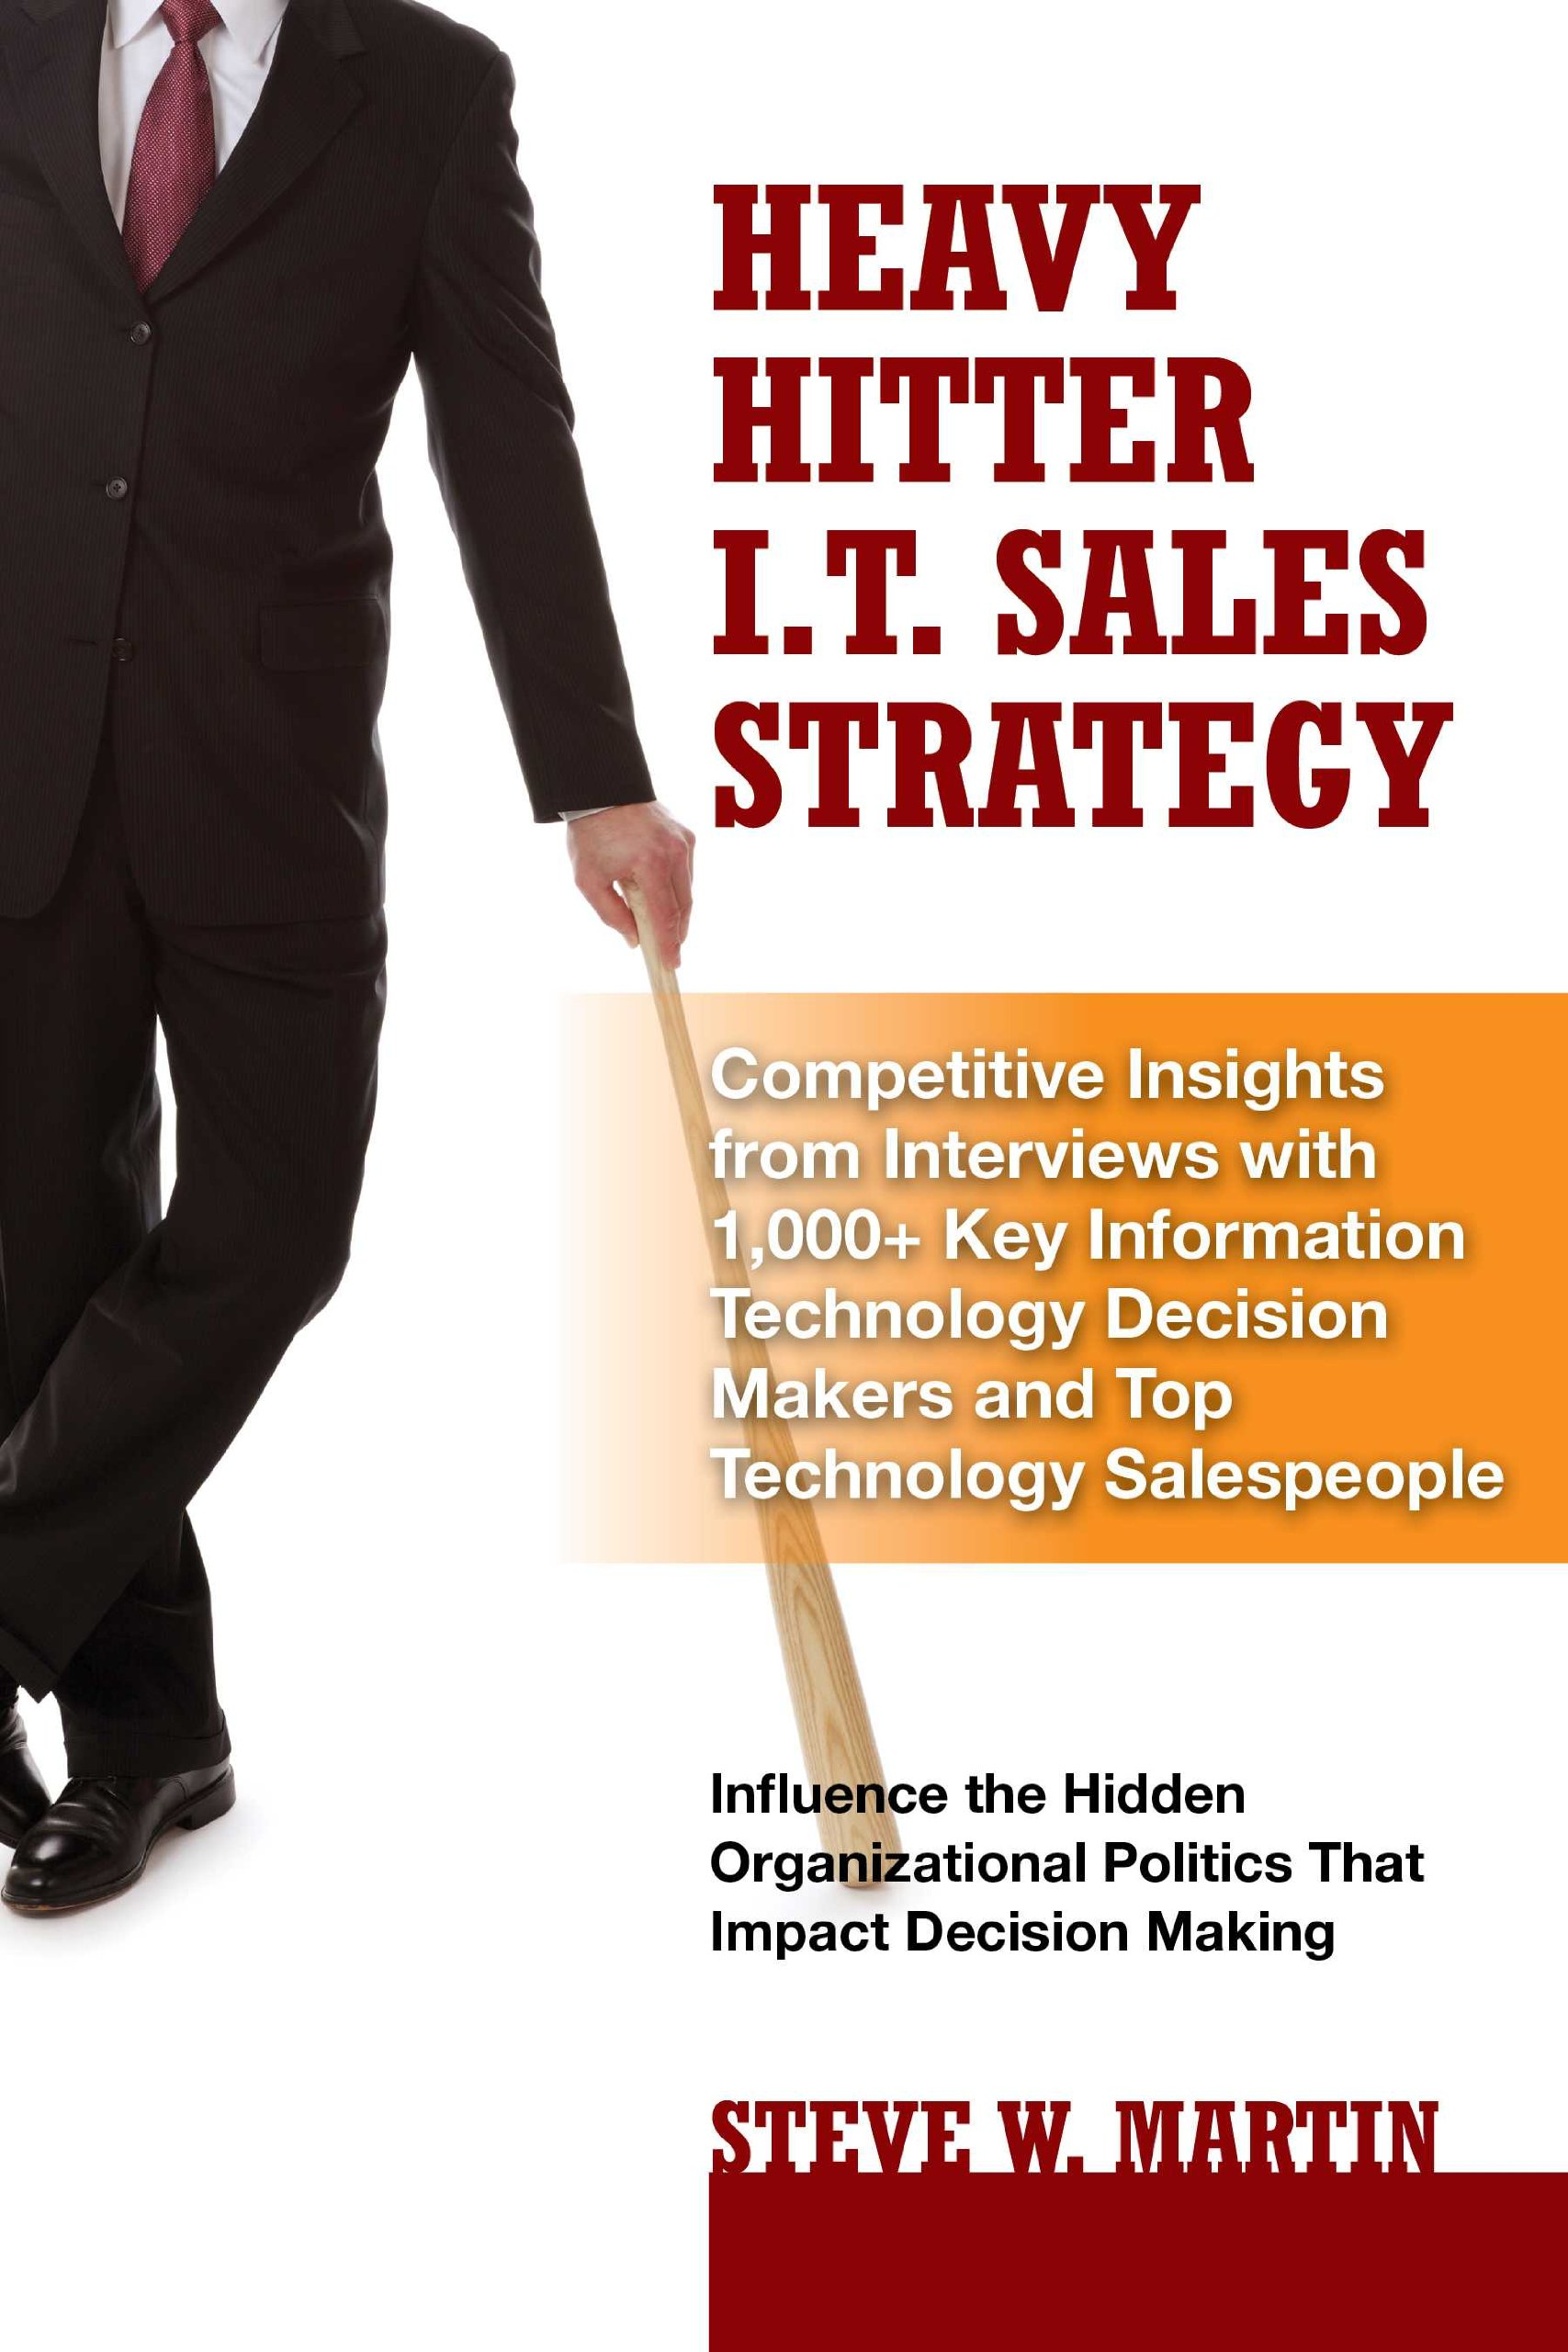 Heavy hitter it sales strategy competitive insights from from interviews with 1 000 key information technology decision makers and top technology salespeople steve w martin 9780979796166 amazon books magicingreecefo Choice Image